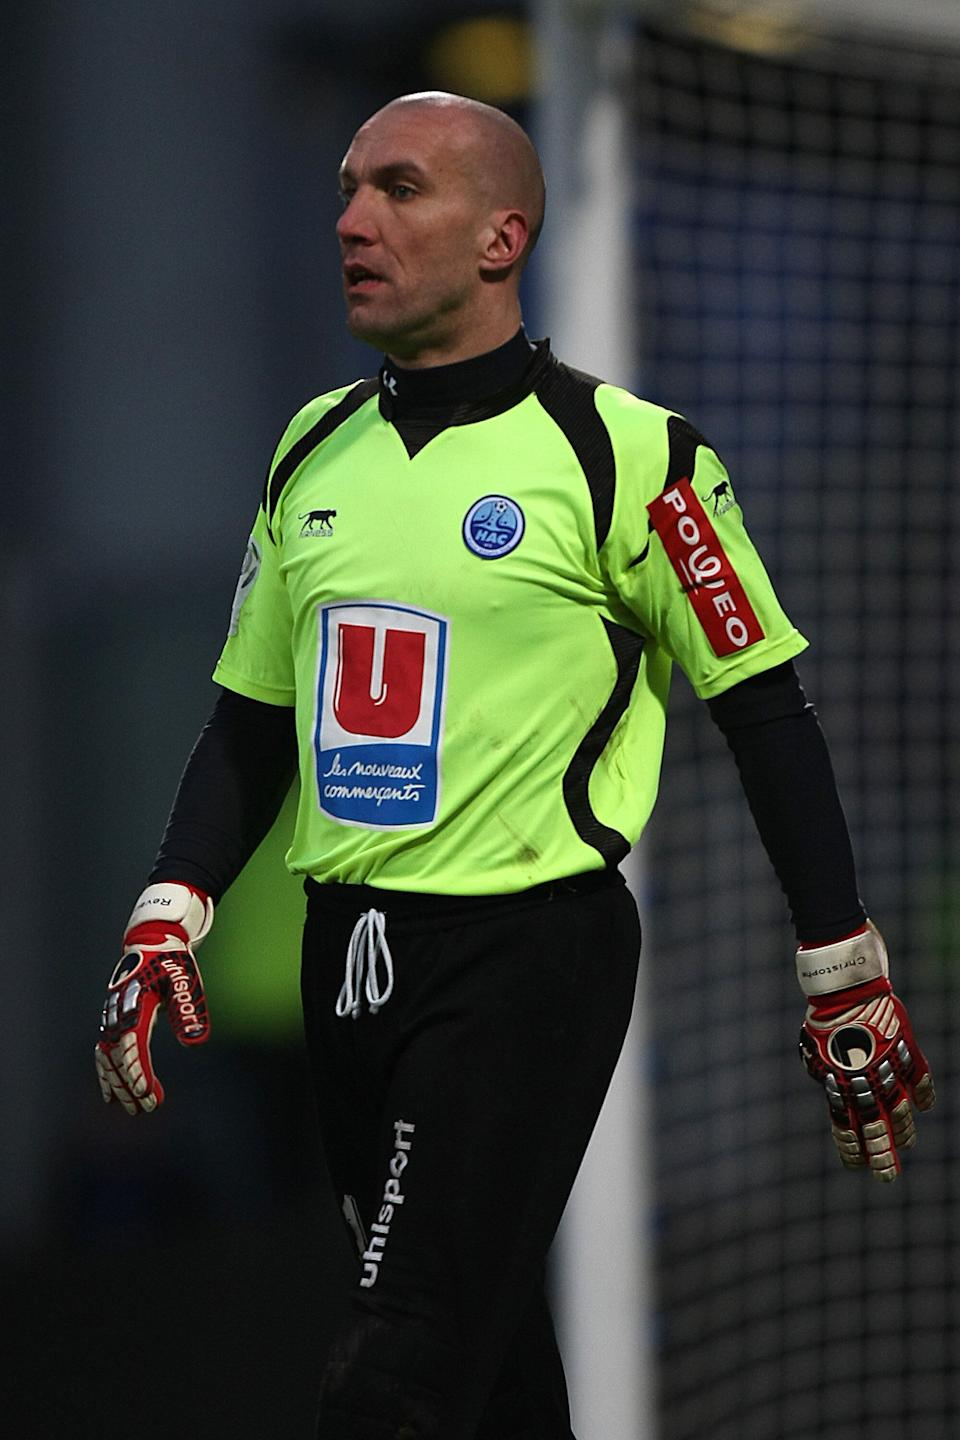 Le Havre AC goalkeeper Christophe Revault  (Photo by John Walton - PA Images via Getty Images) (Photo: John Walton - EMPICS via Getty Images)